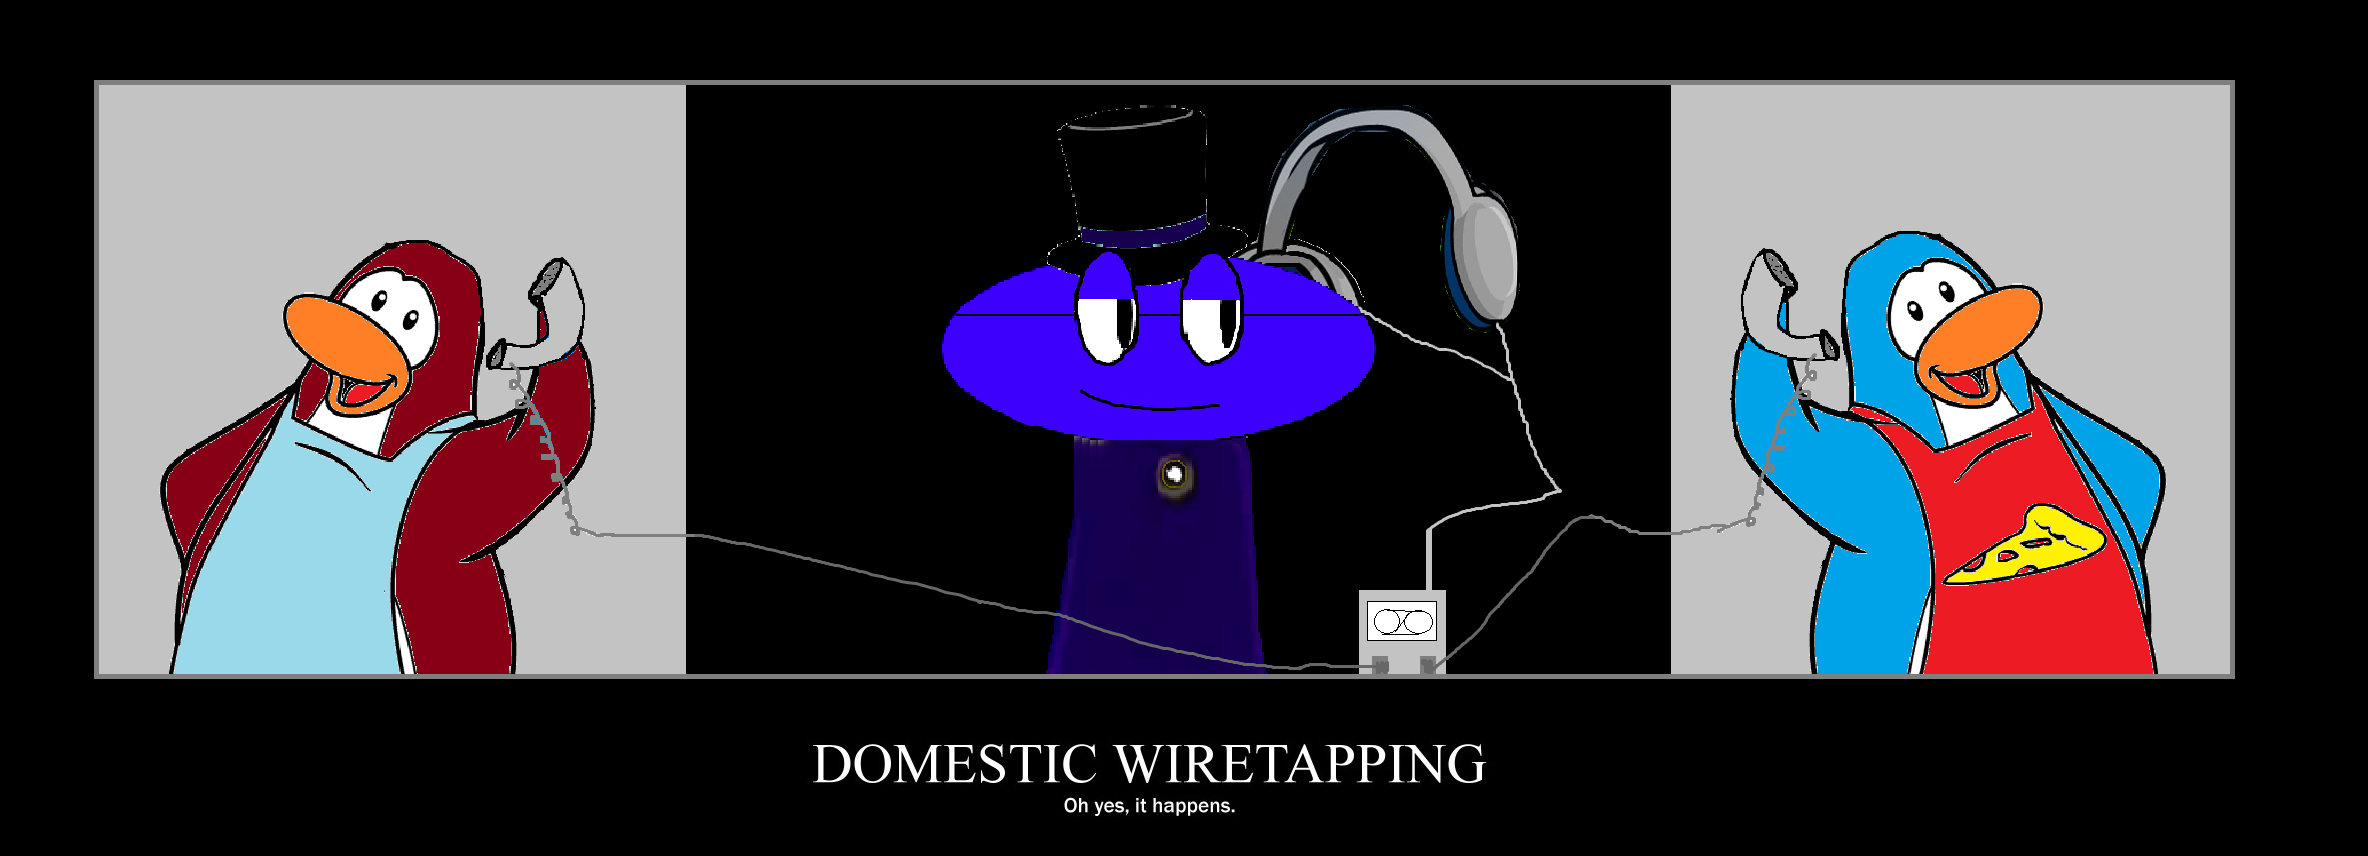 WIRETAPPING.png